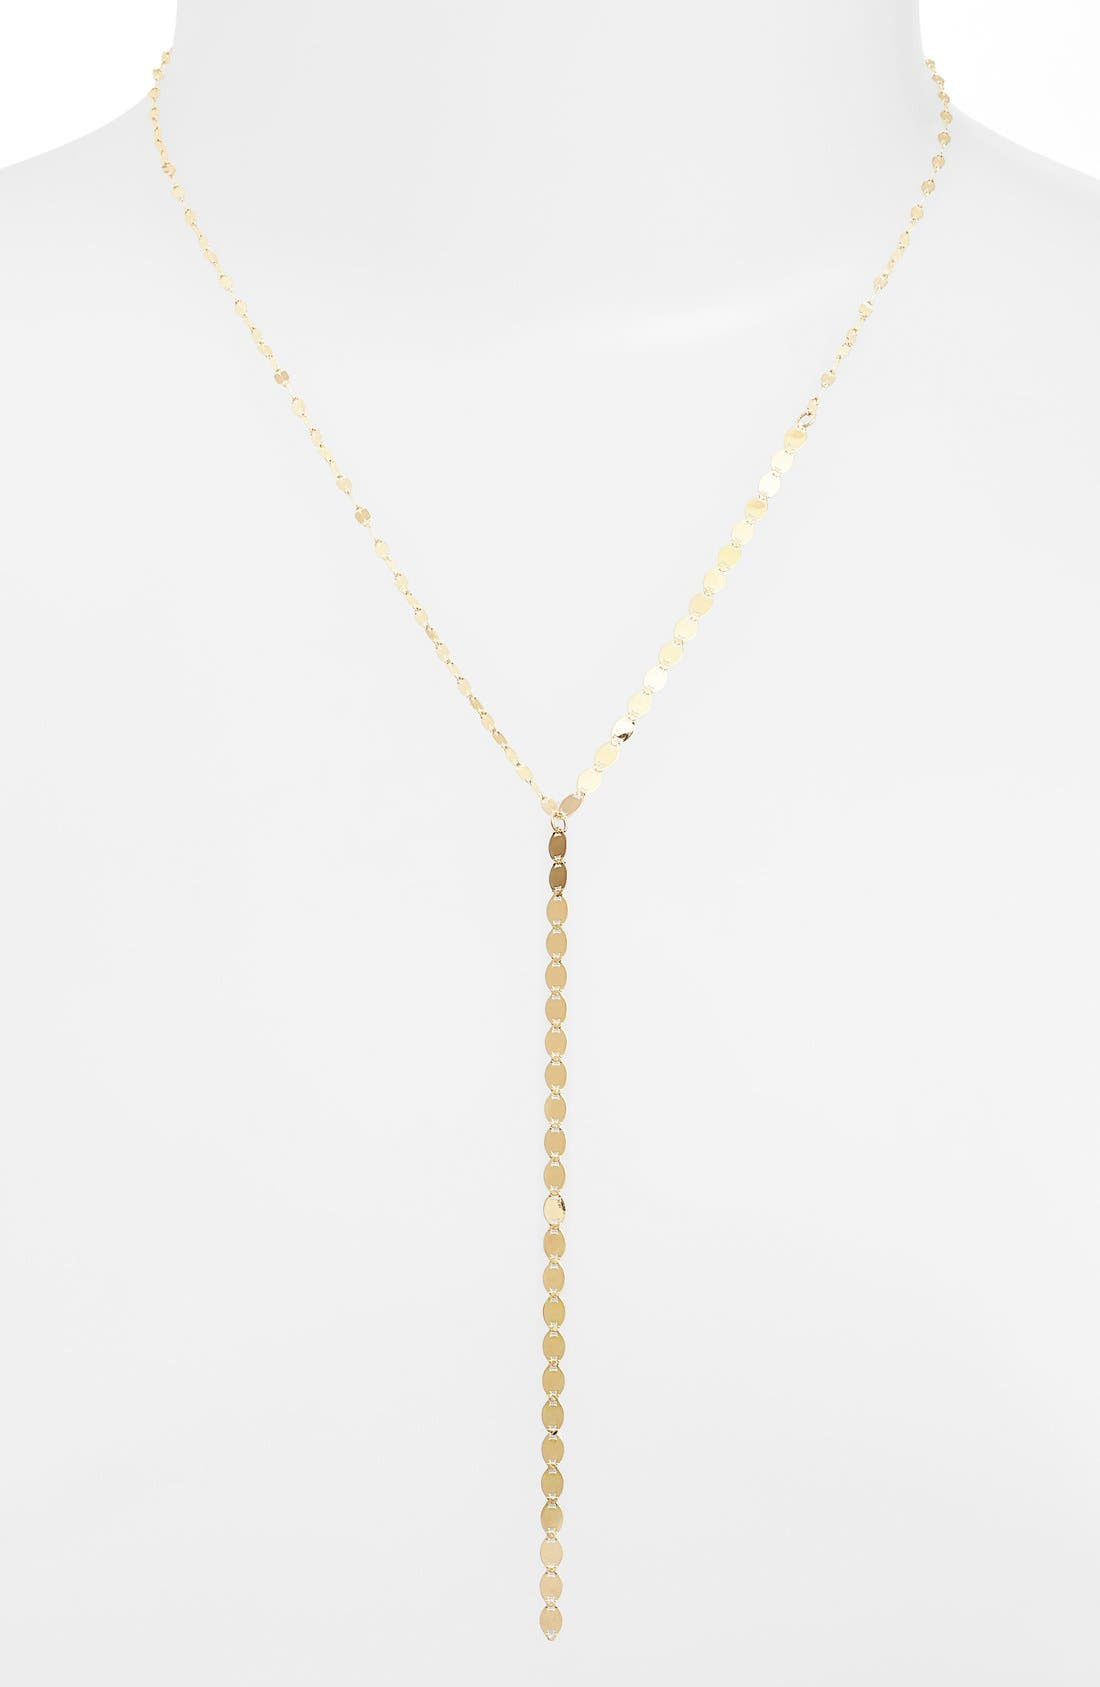 LANA JEWELRY 'Nude' Y-Necklace